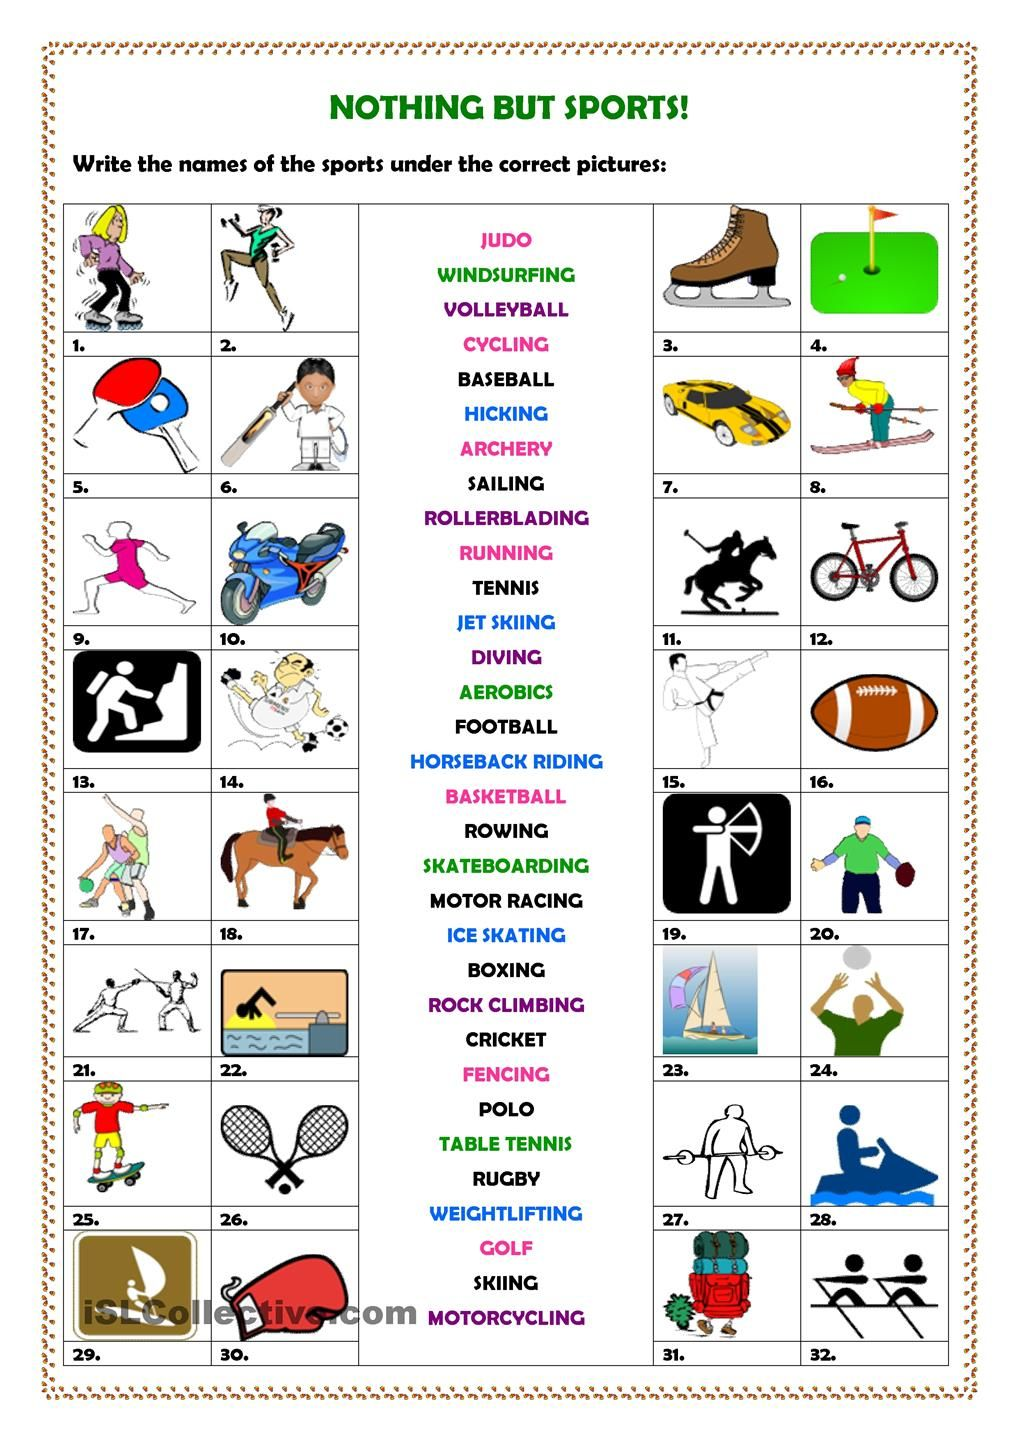 Nothing But Sports Aprender Ingles Idioma Ingles Actividades